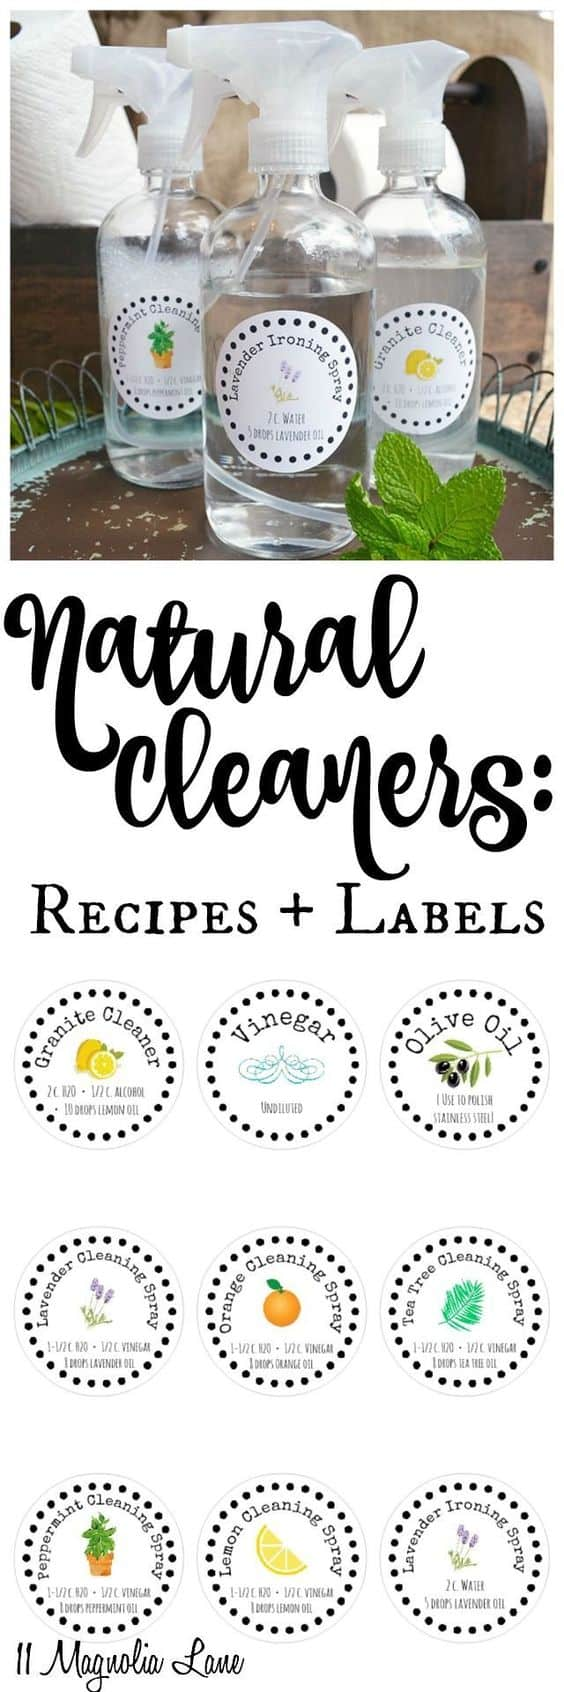 naturalcleaners